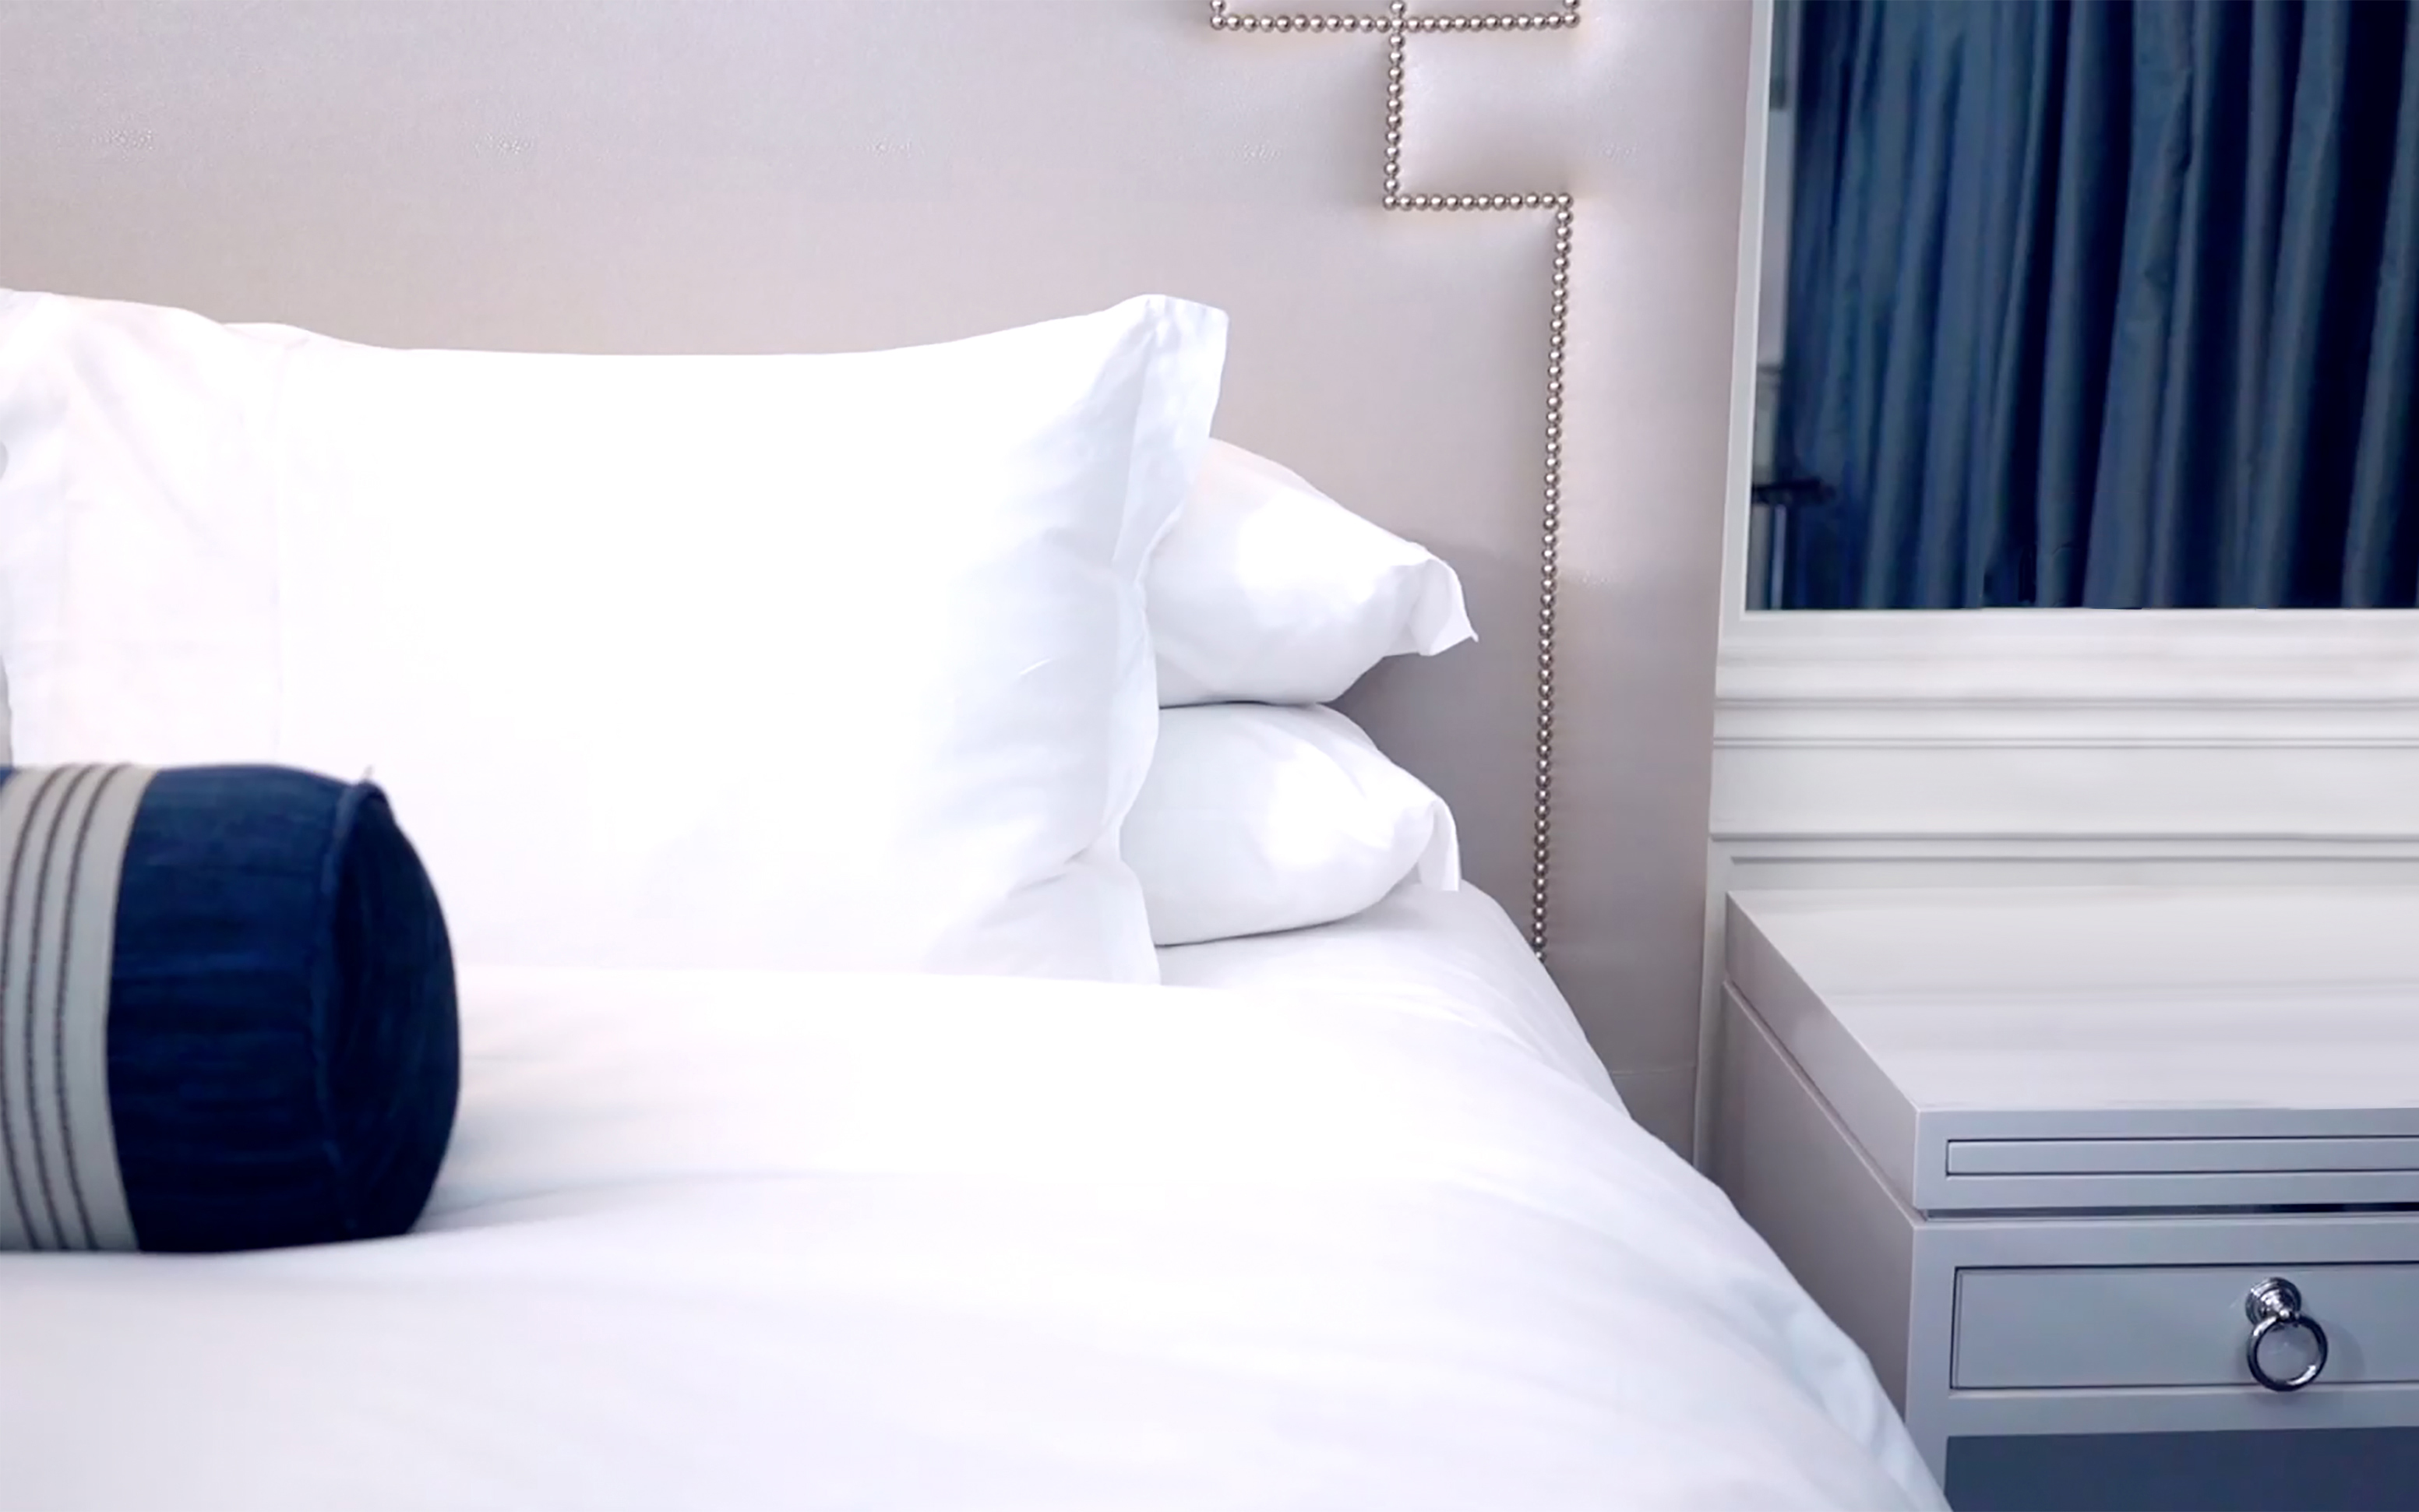 SilkWay™ - The Sheets Your Hotel Guests Absolutely Must Have